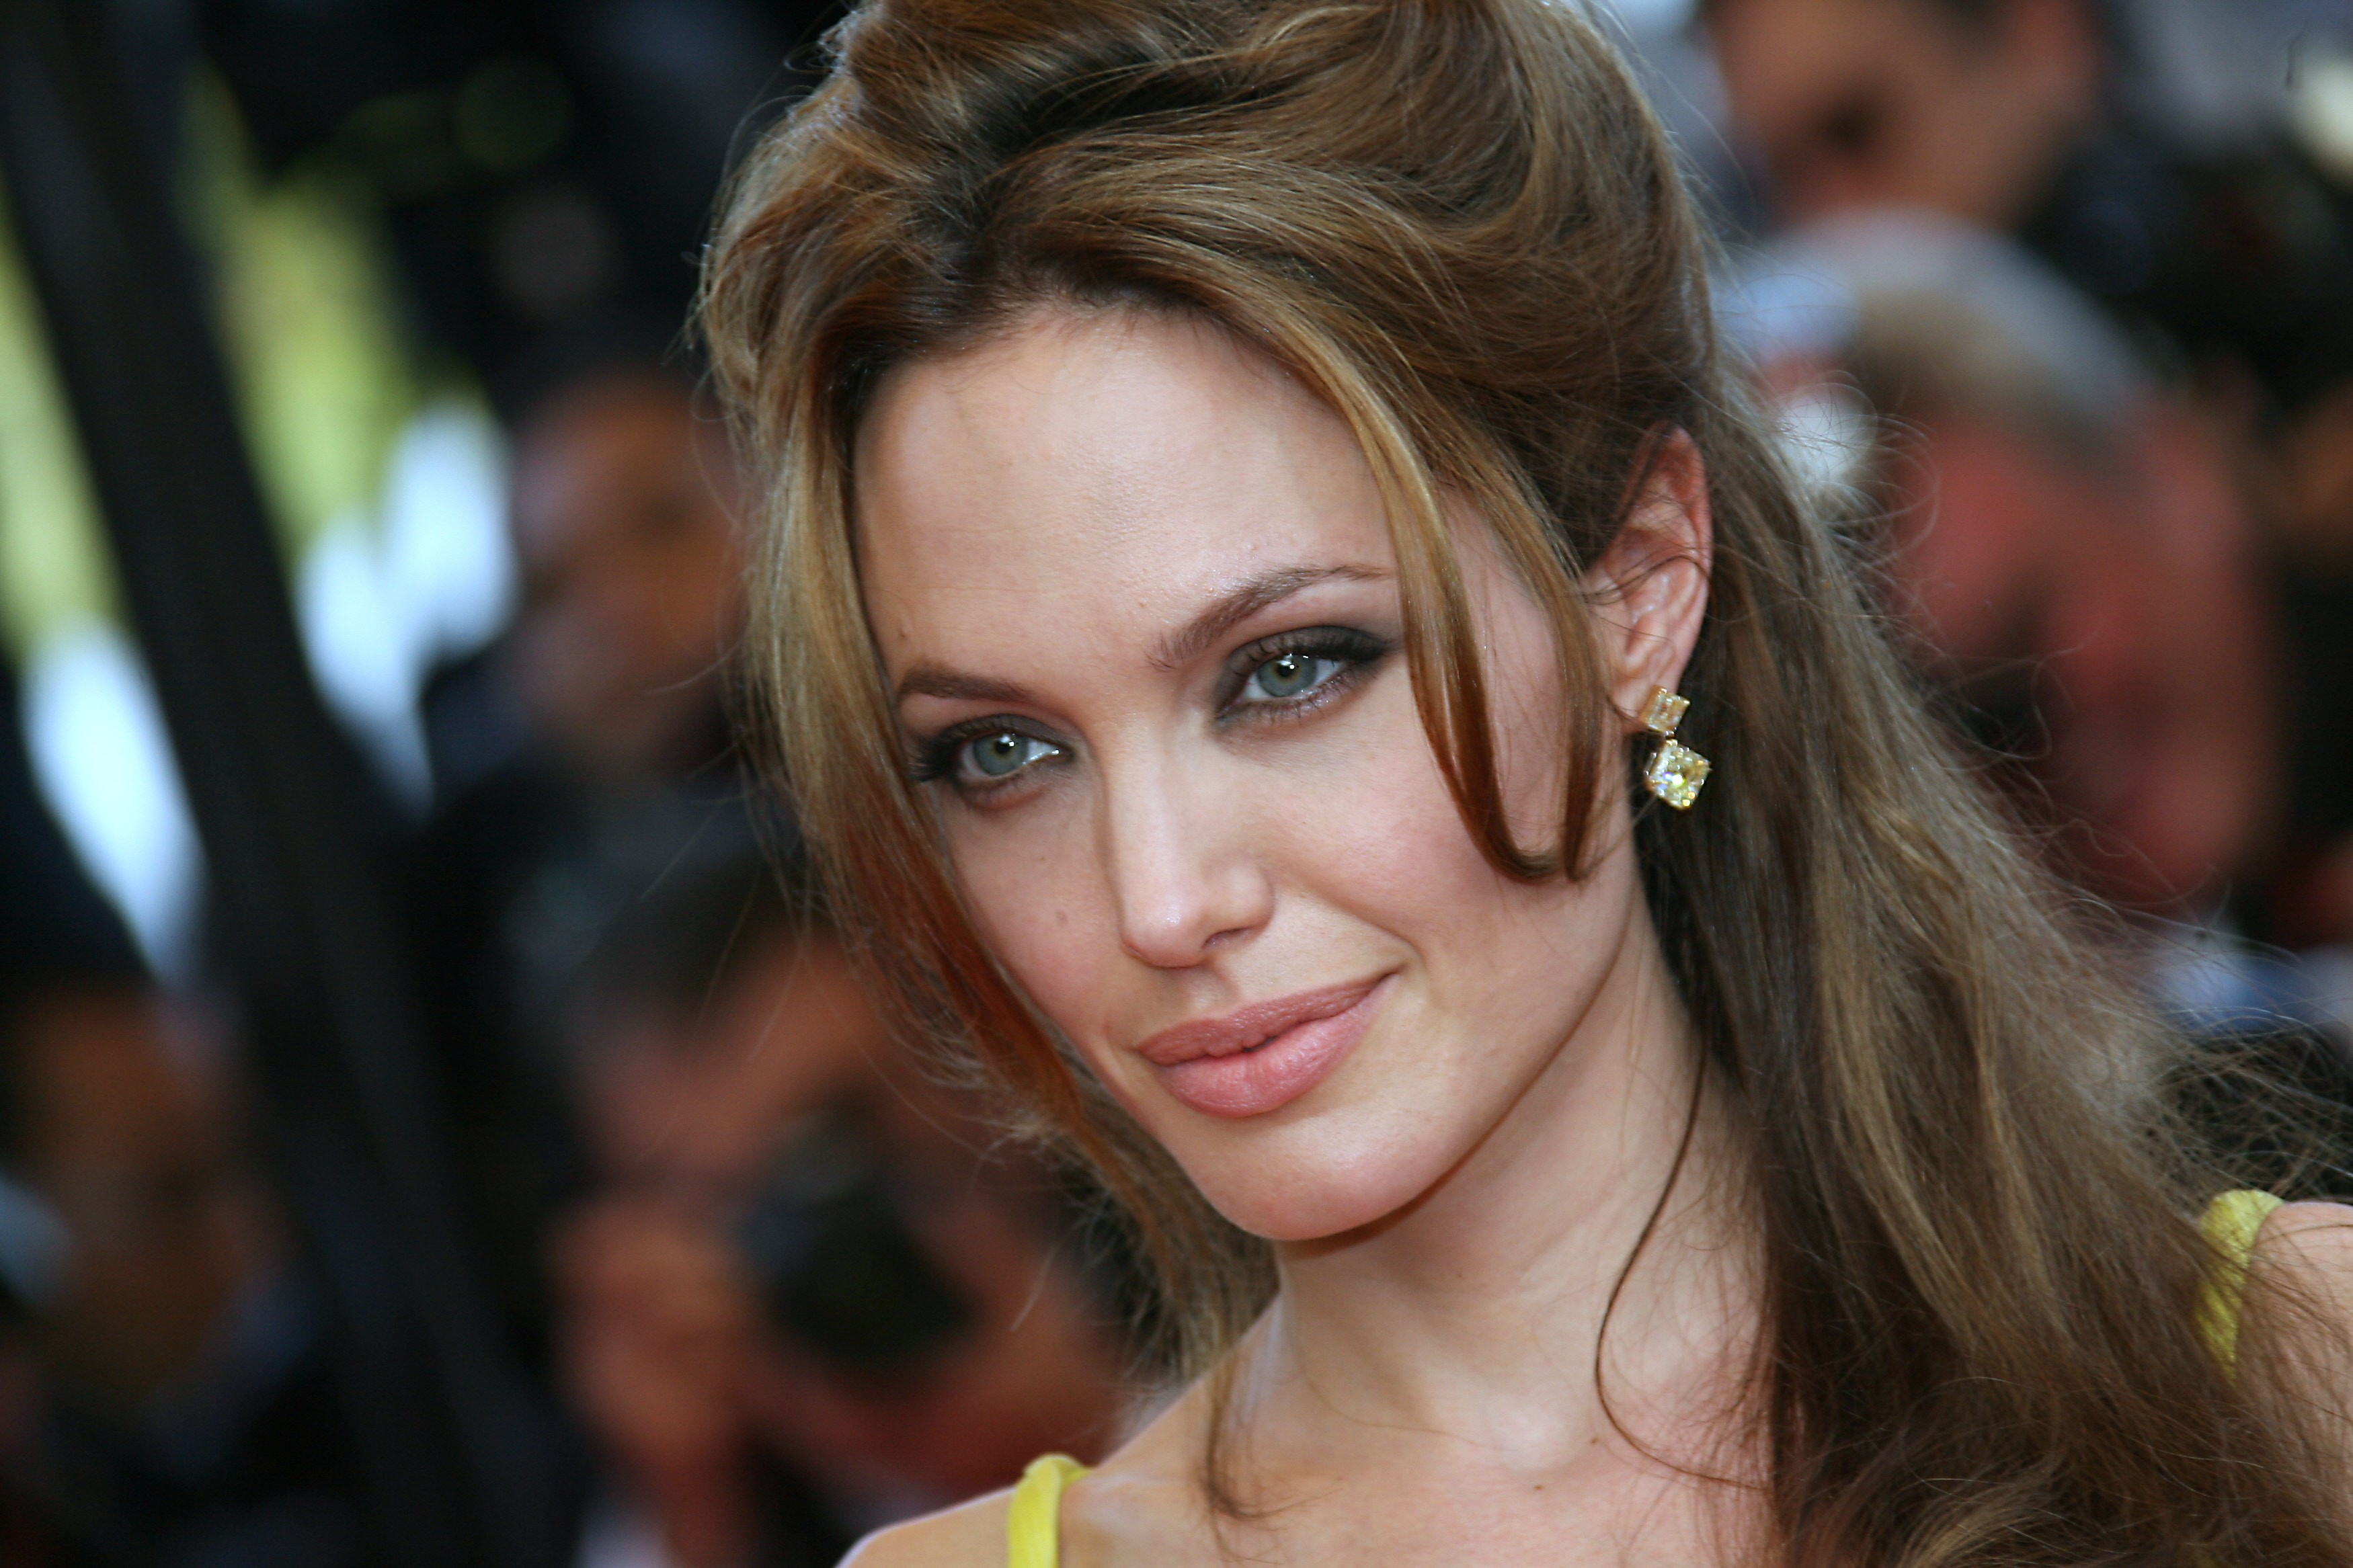 angelina jolie romantic eyes wallpapers hd desktop widescreen background